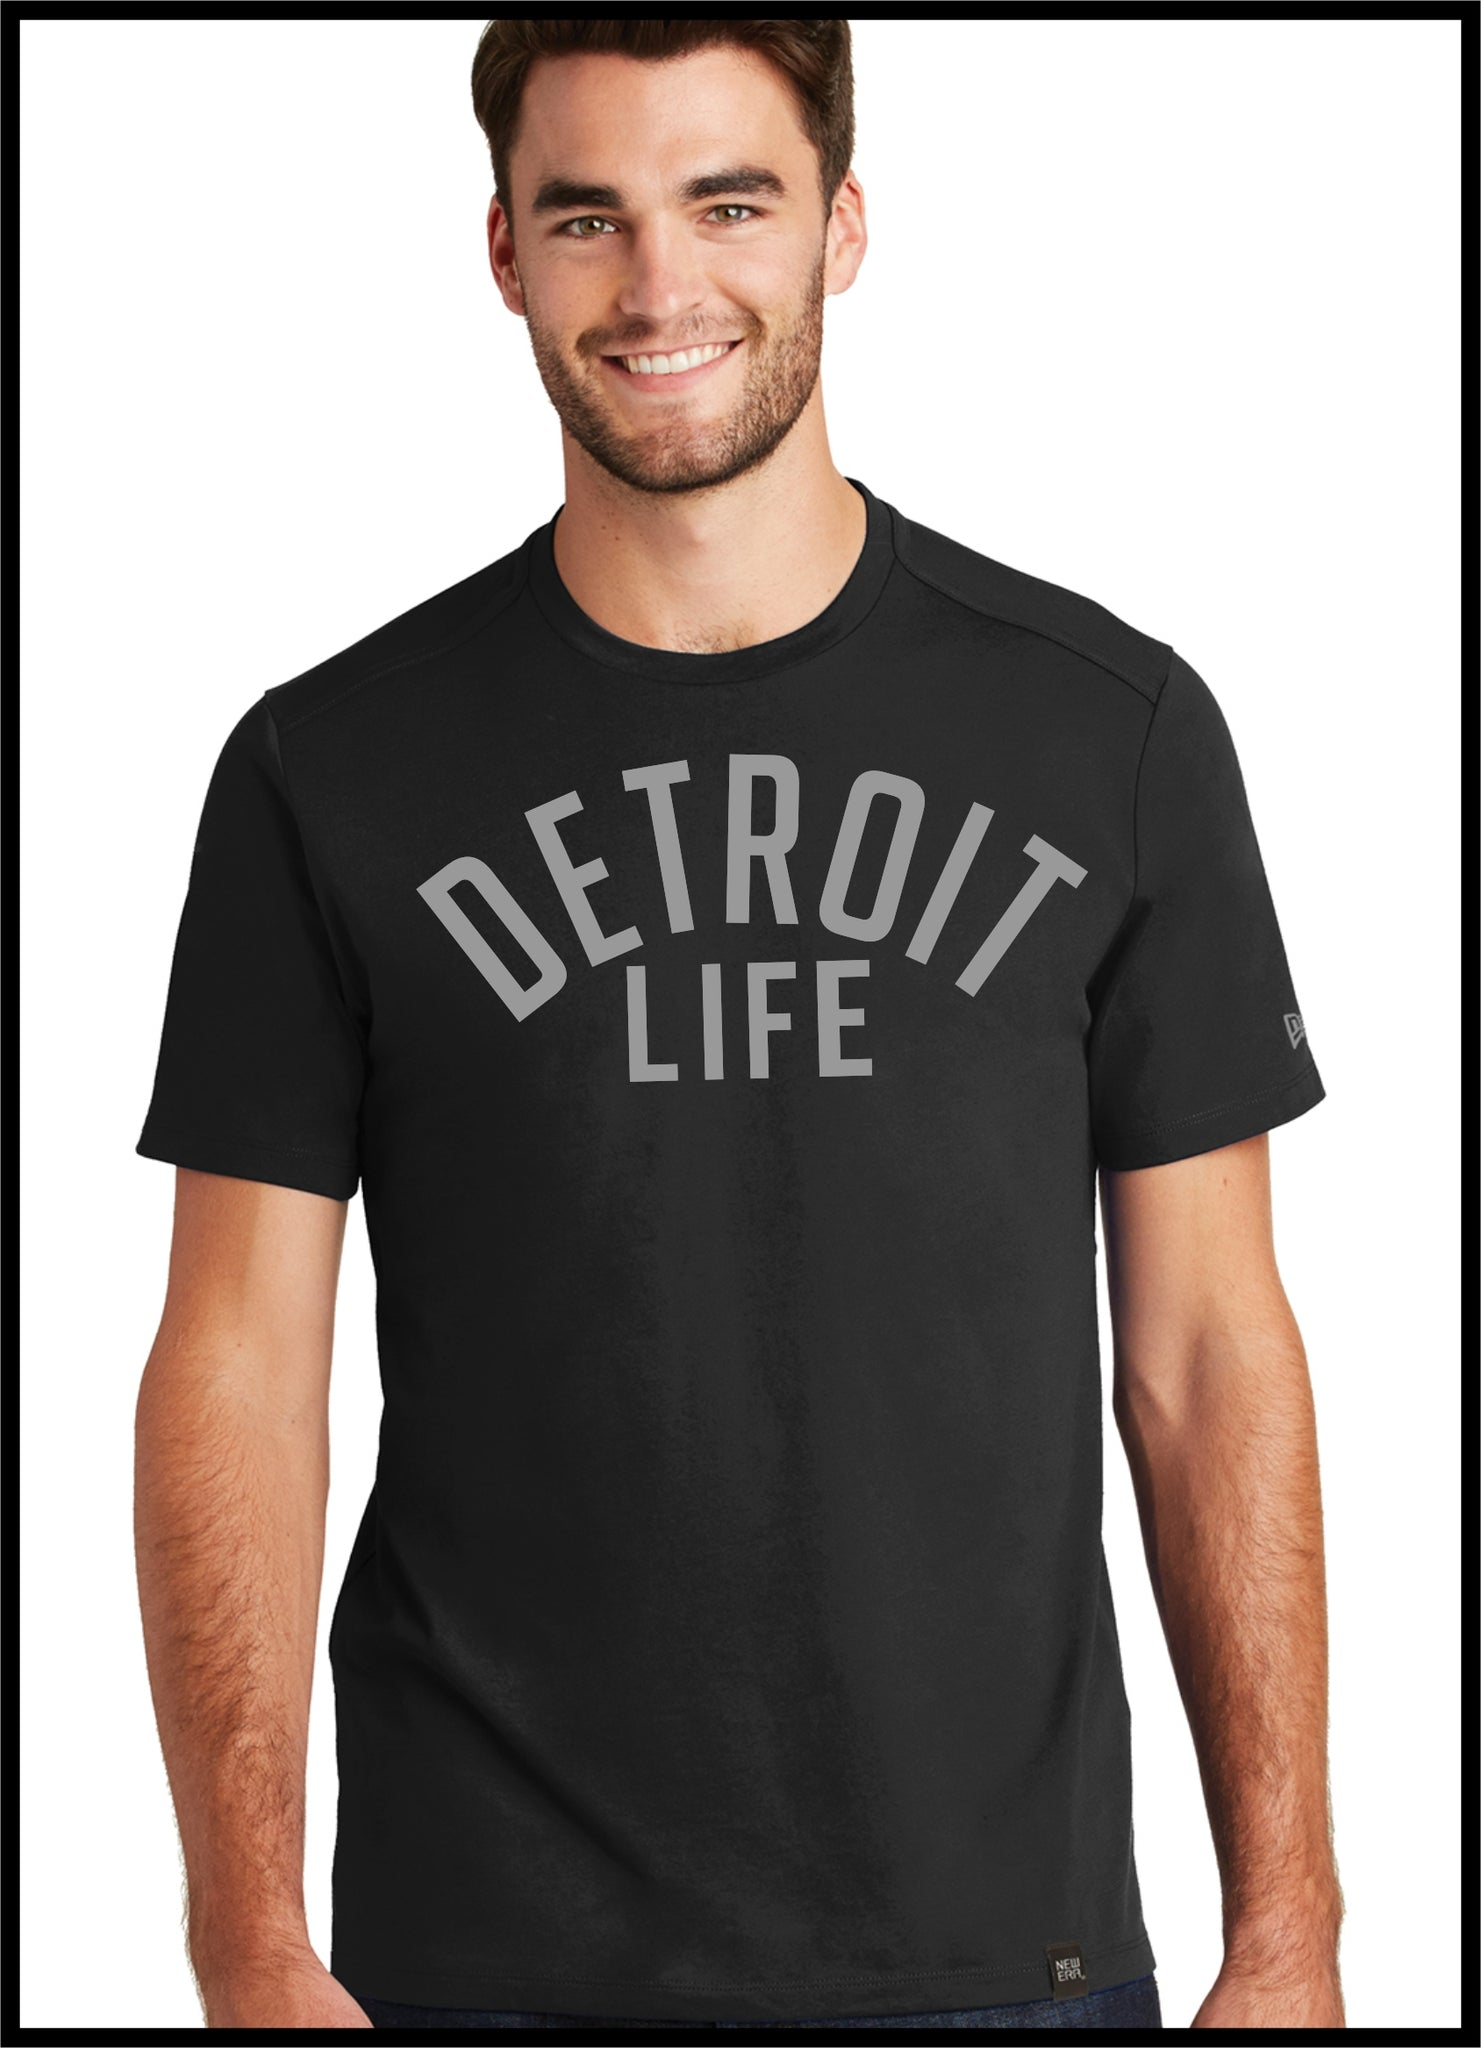 DETROIT LIFE T SHIRT NEW ERA